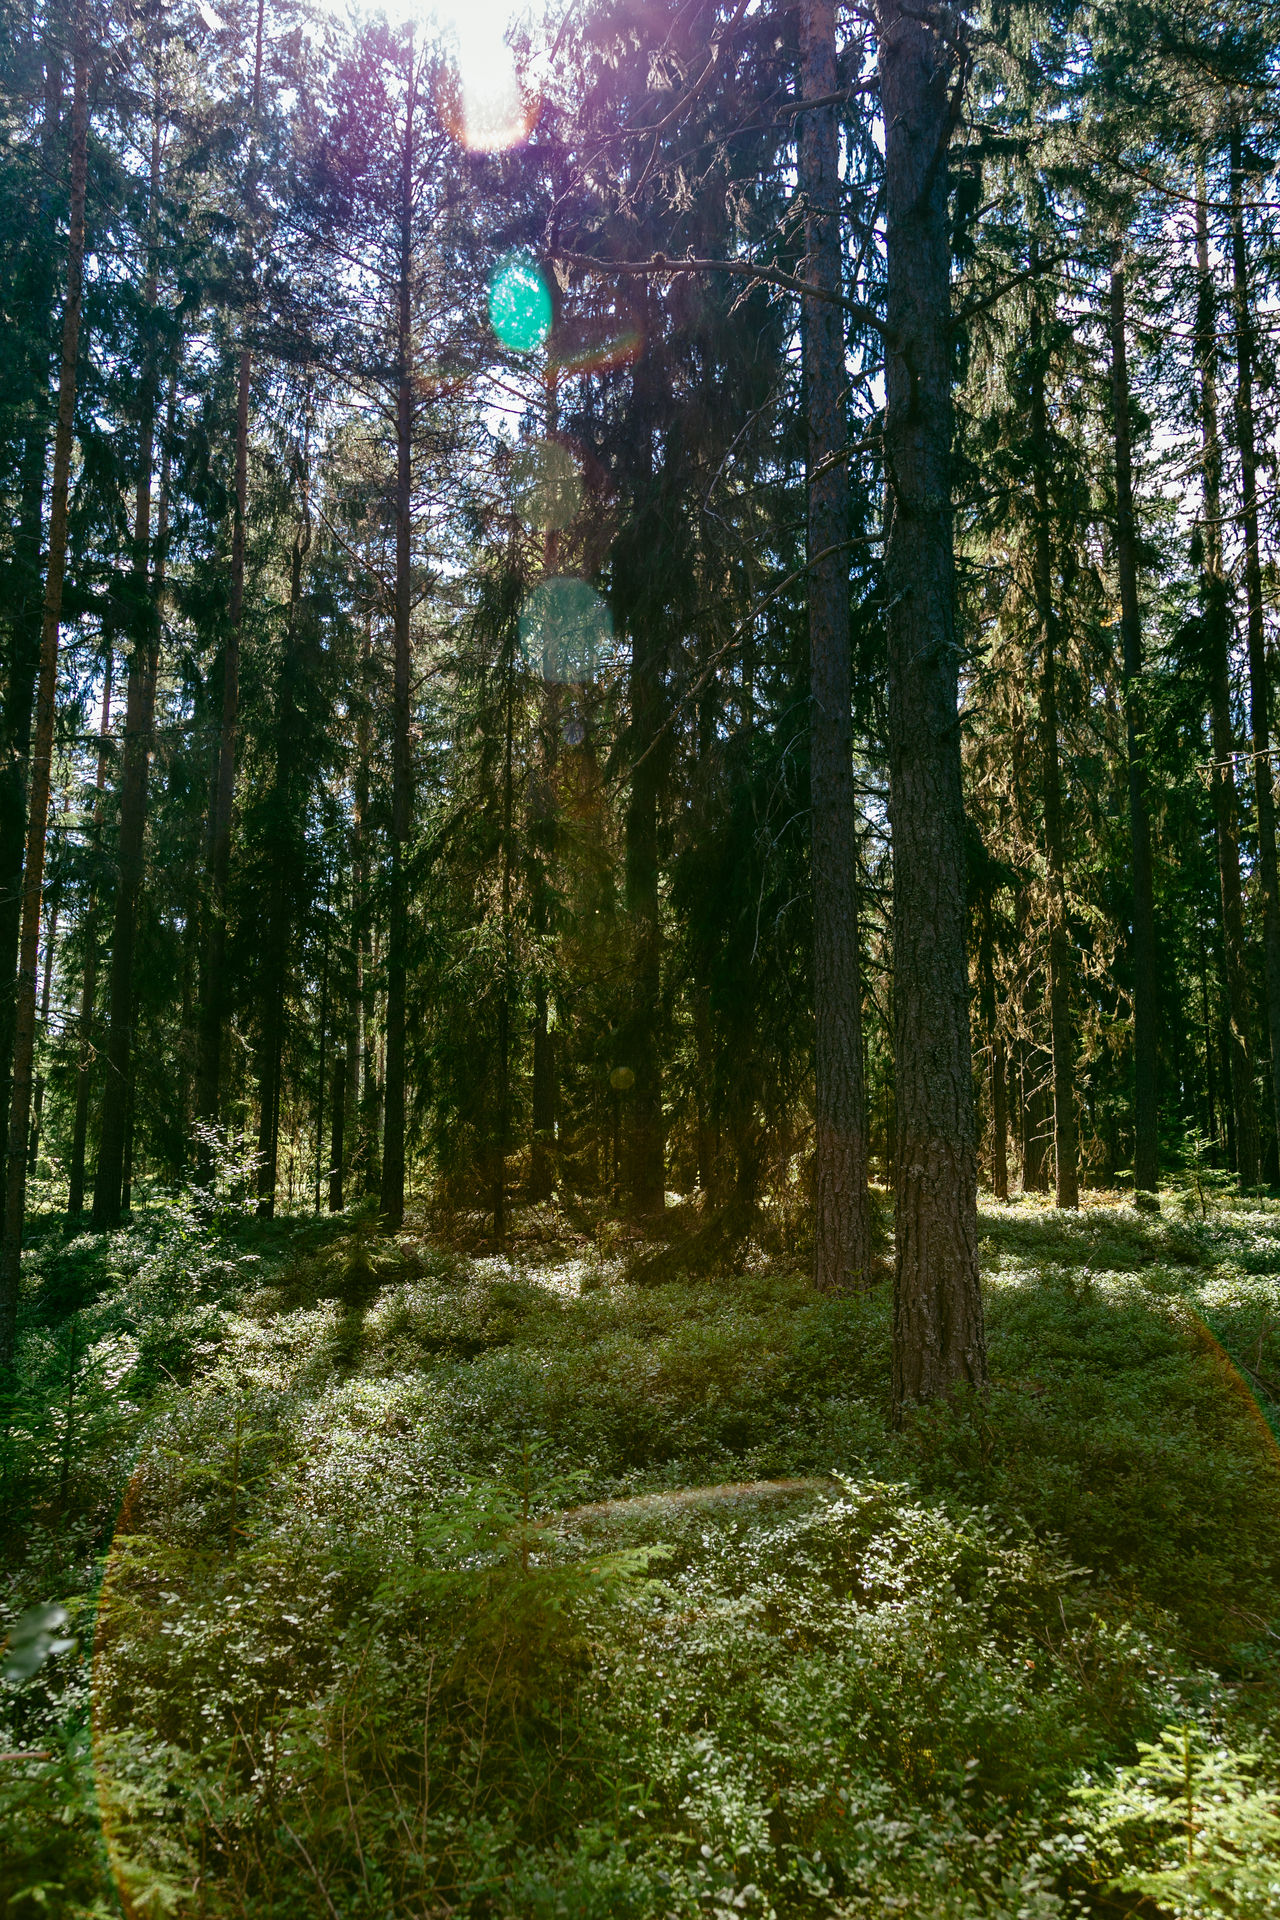 Swedish forest in summer Beauty In Nature Dalarna Day Forest Green Color Growth Landscape Nature No People Outdoors Scenics Summer Sweden Swedish Swedish Nature Tranquility Tree Tällberg